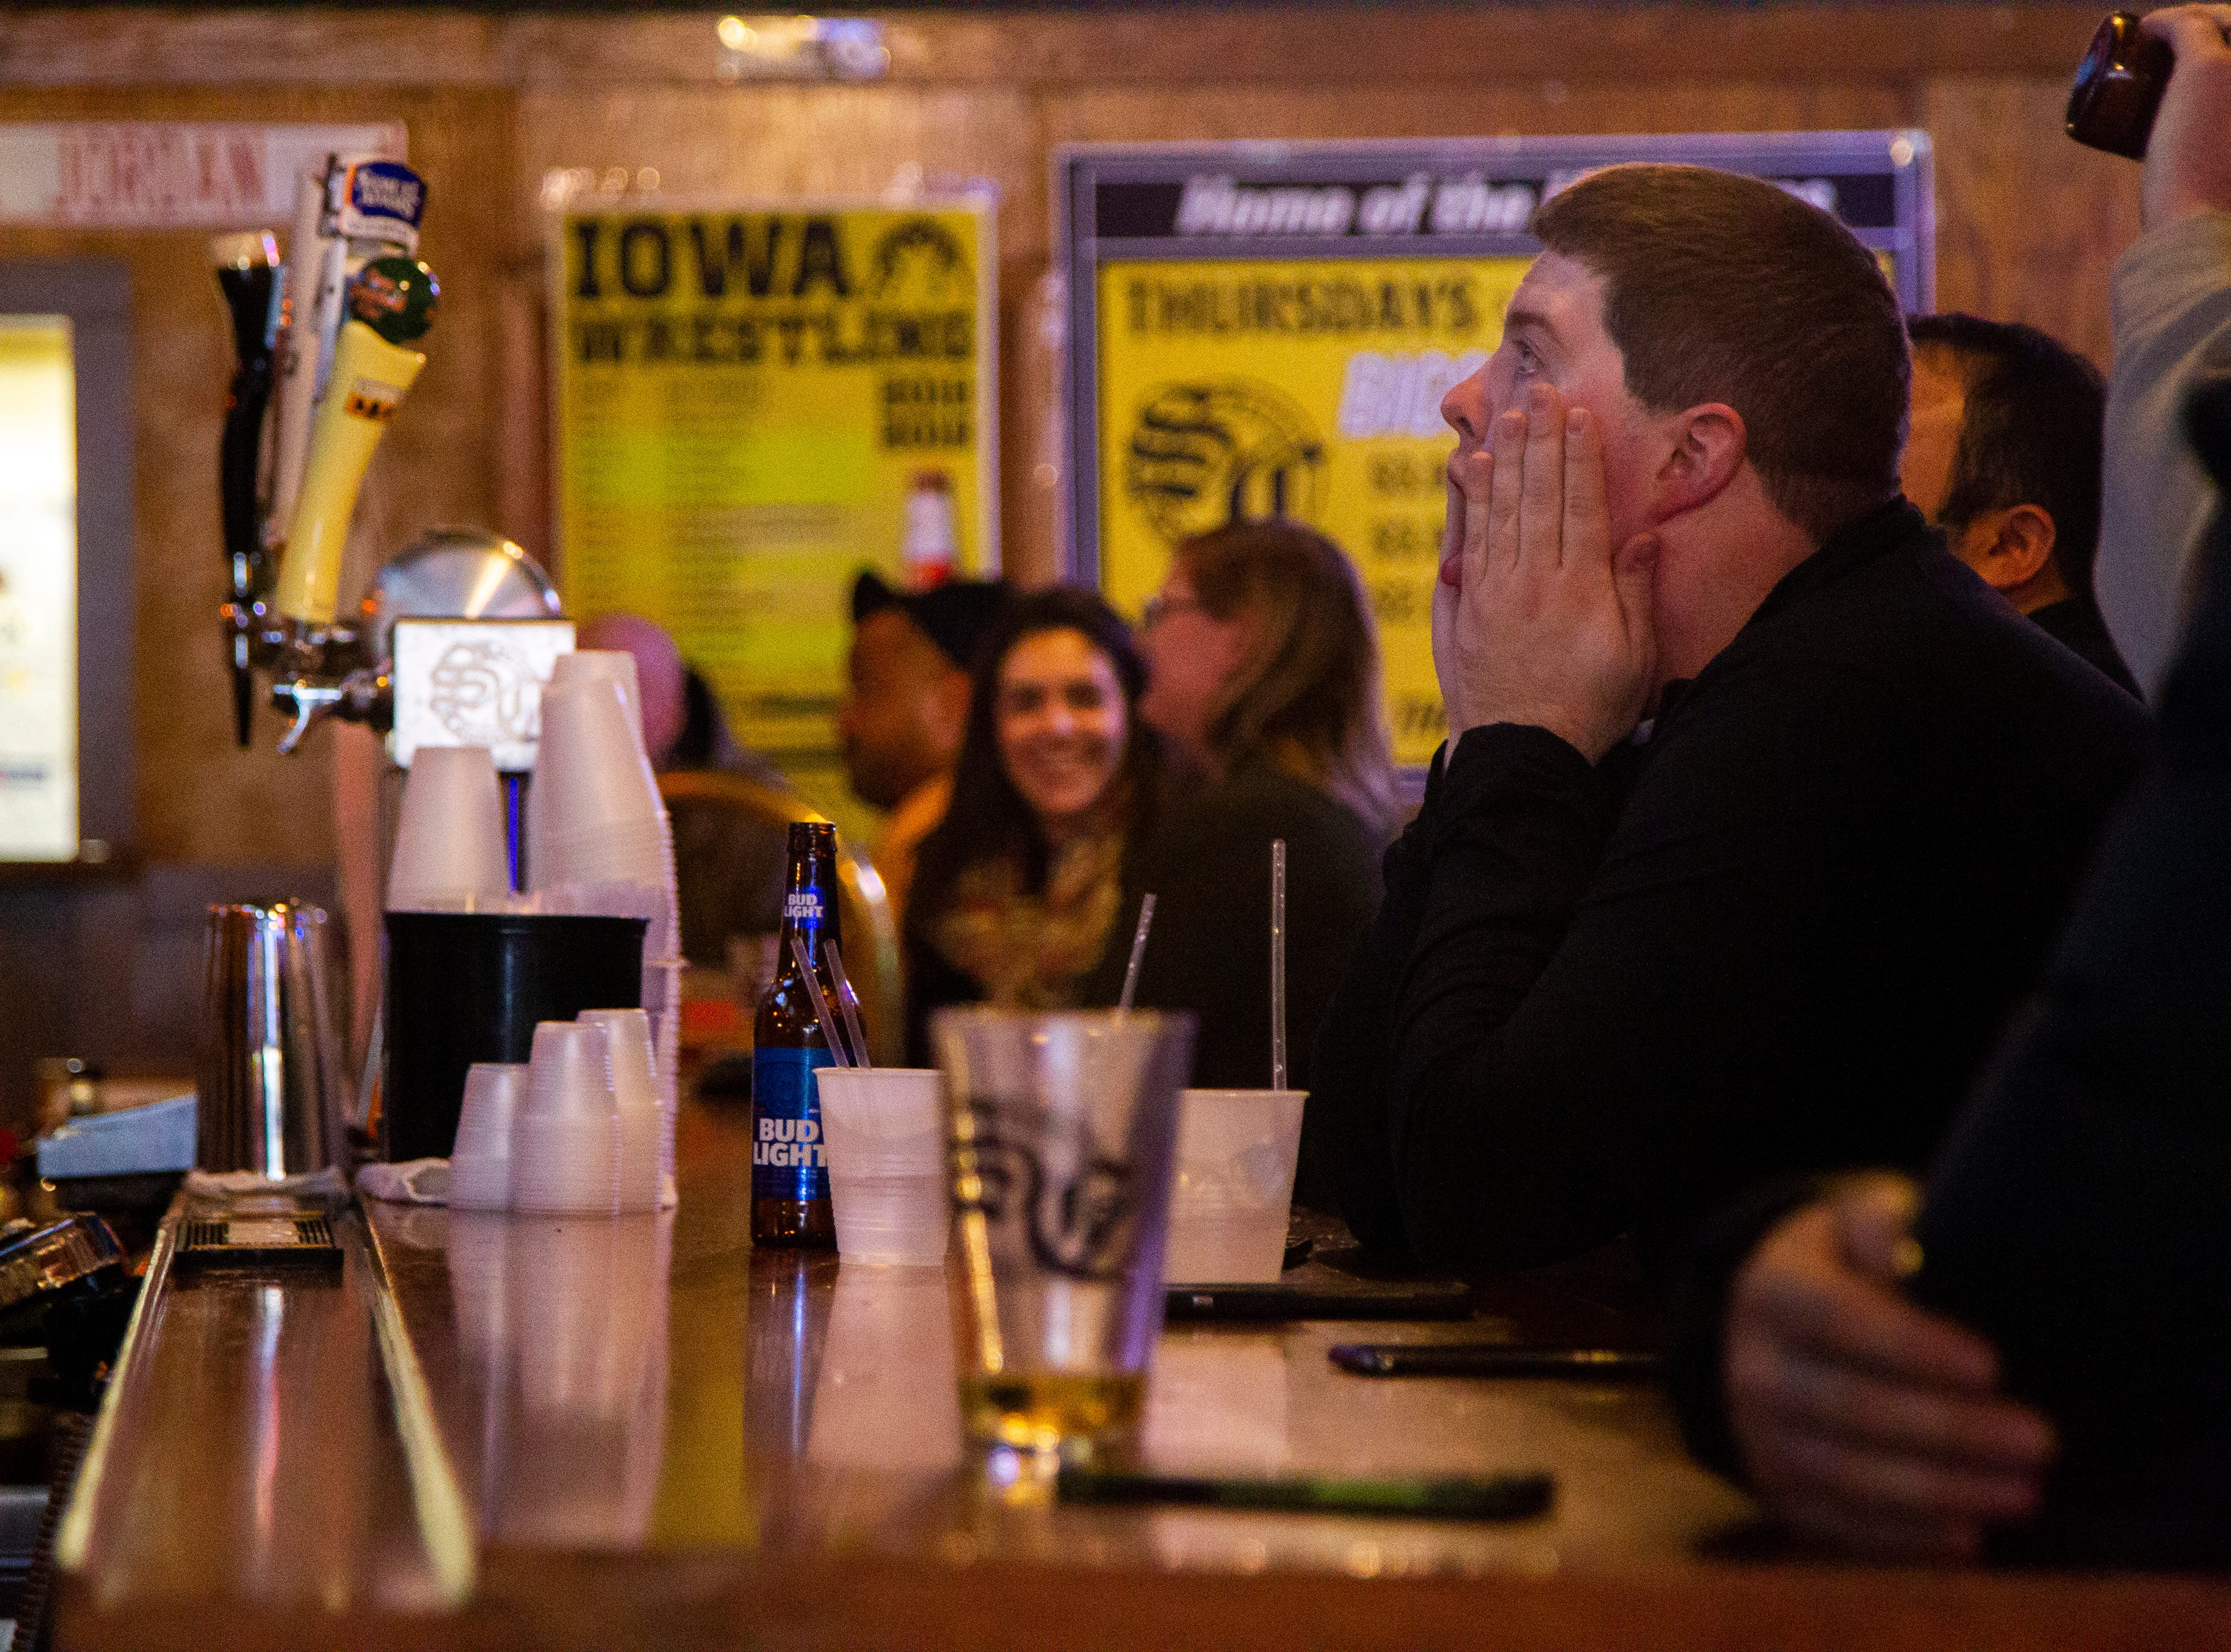 Iowa fans watch intently during the finals drive while watching the Iowa vs. Mississippi State Outback Bowl football game on Tuesday, Jan. 1, 2019, at Sports Column on S. Dubuque Street in Iowa City.